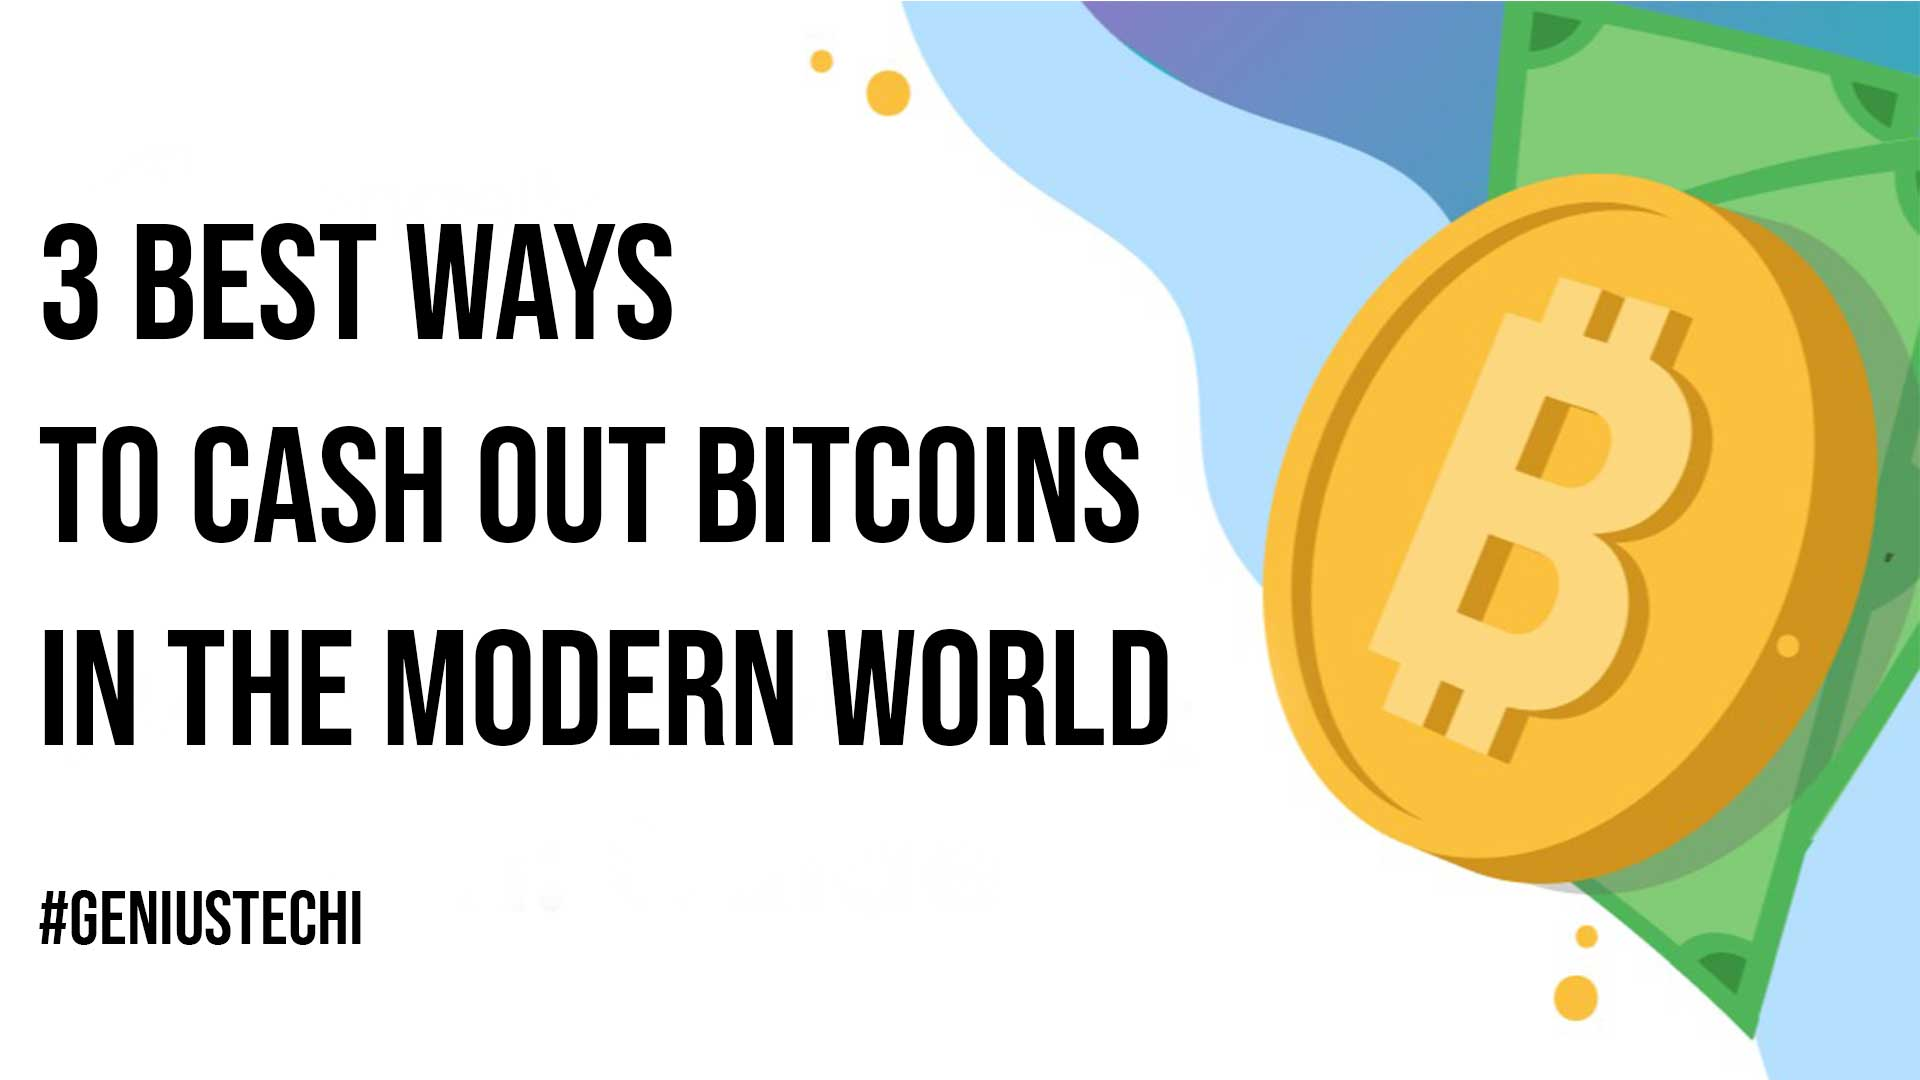 3 Best Ways To Cash Out Bitcoins In The Modern World